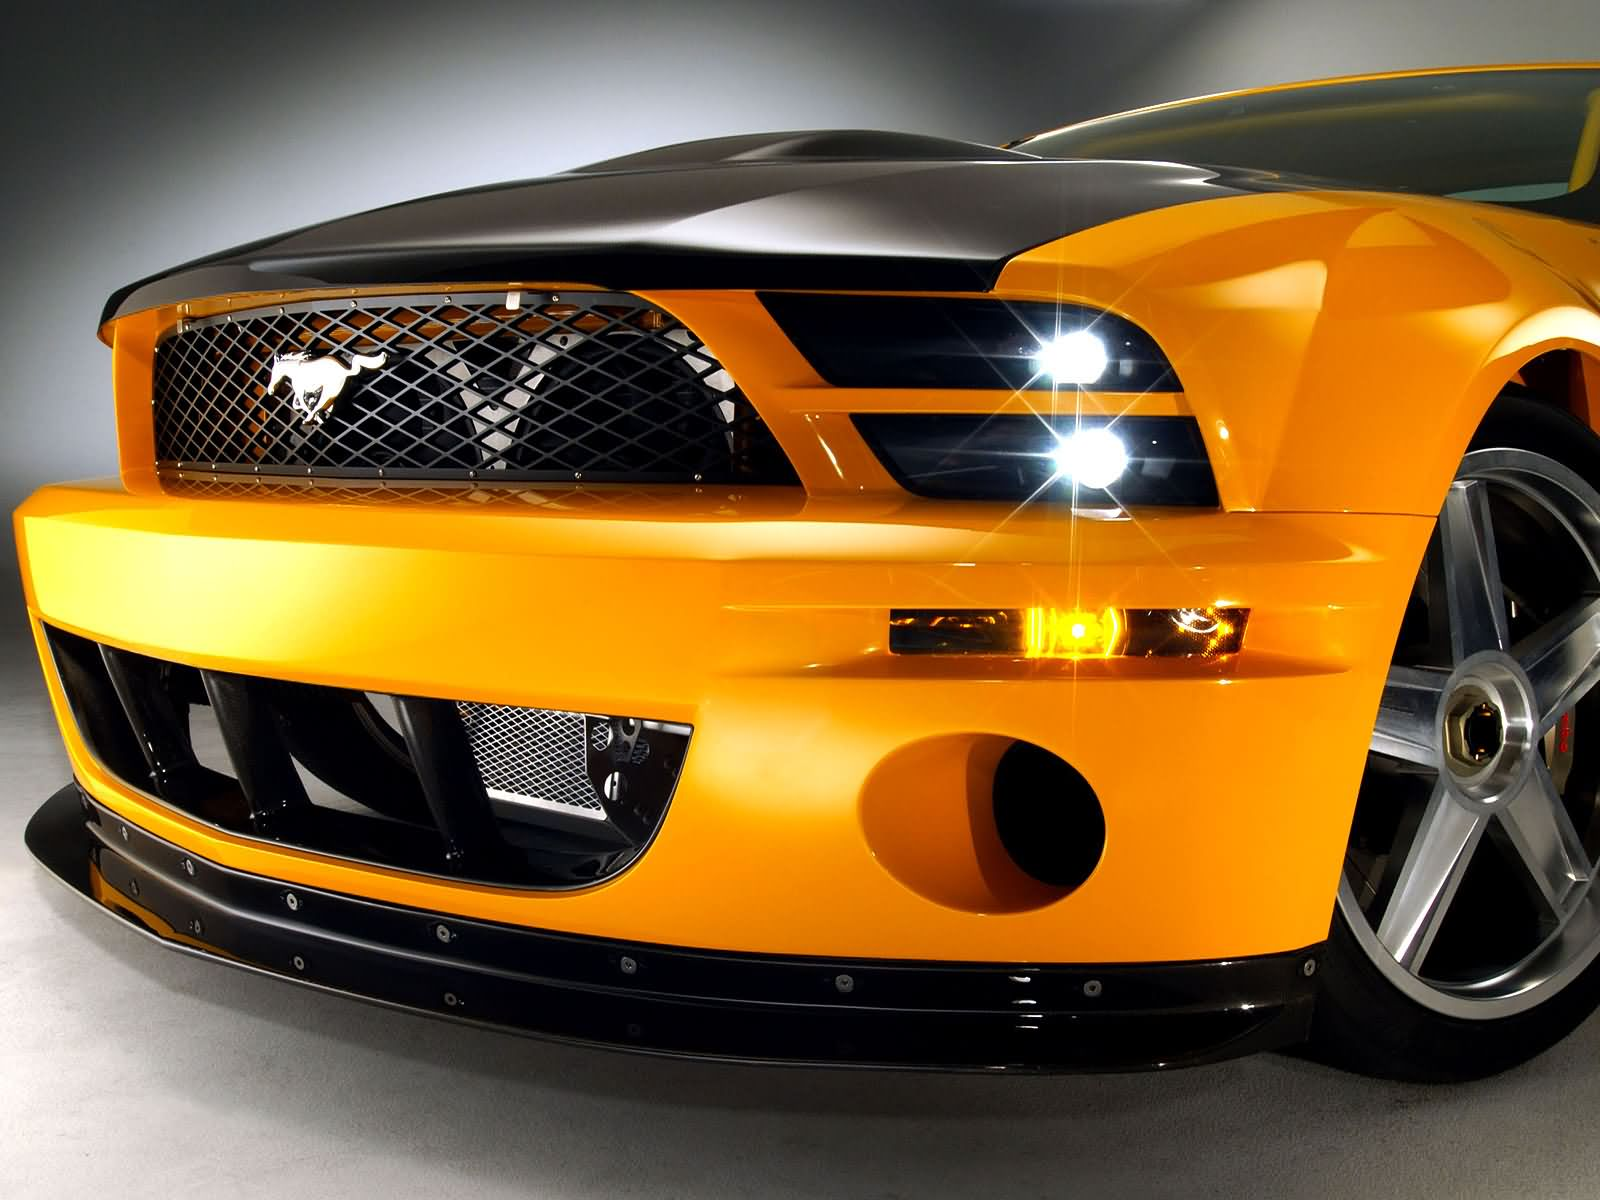 Ford Mustang GT Exclusive HD Wallpapers 1361 1600x1200